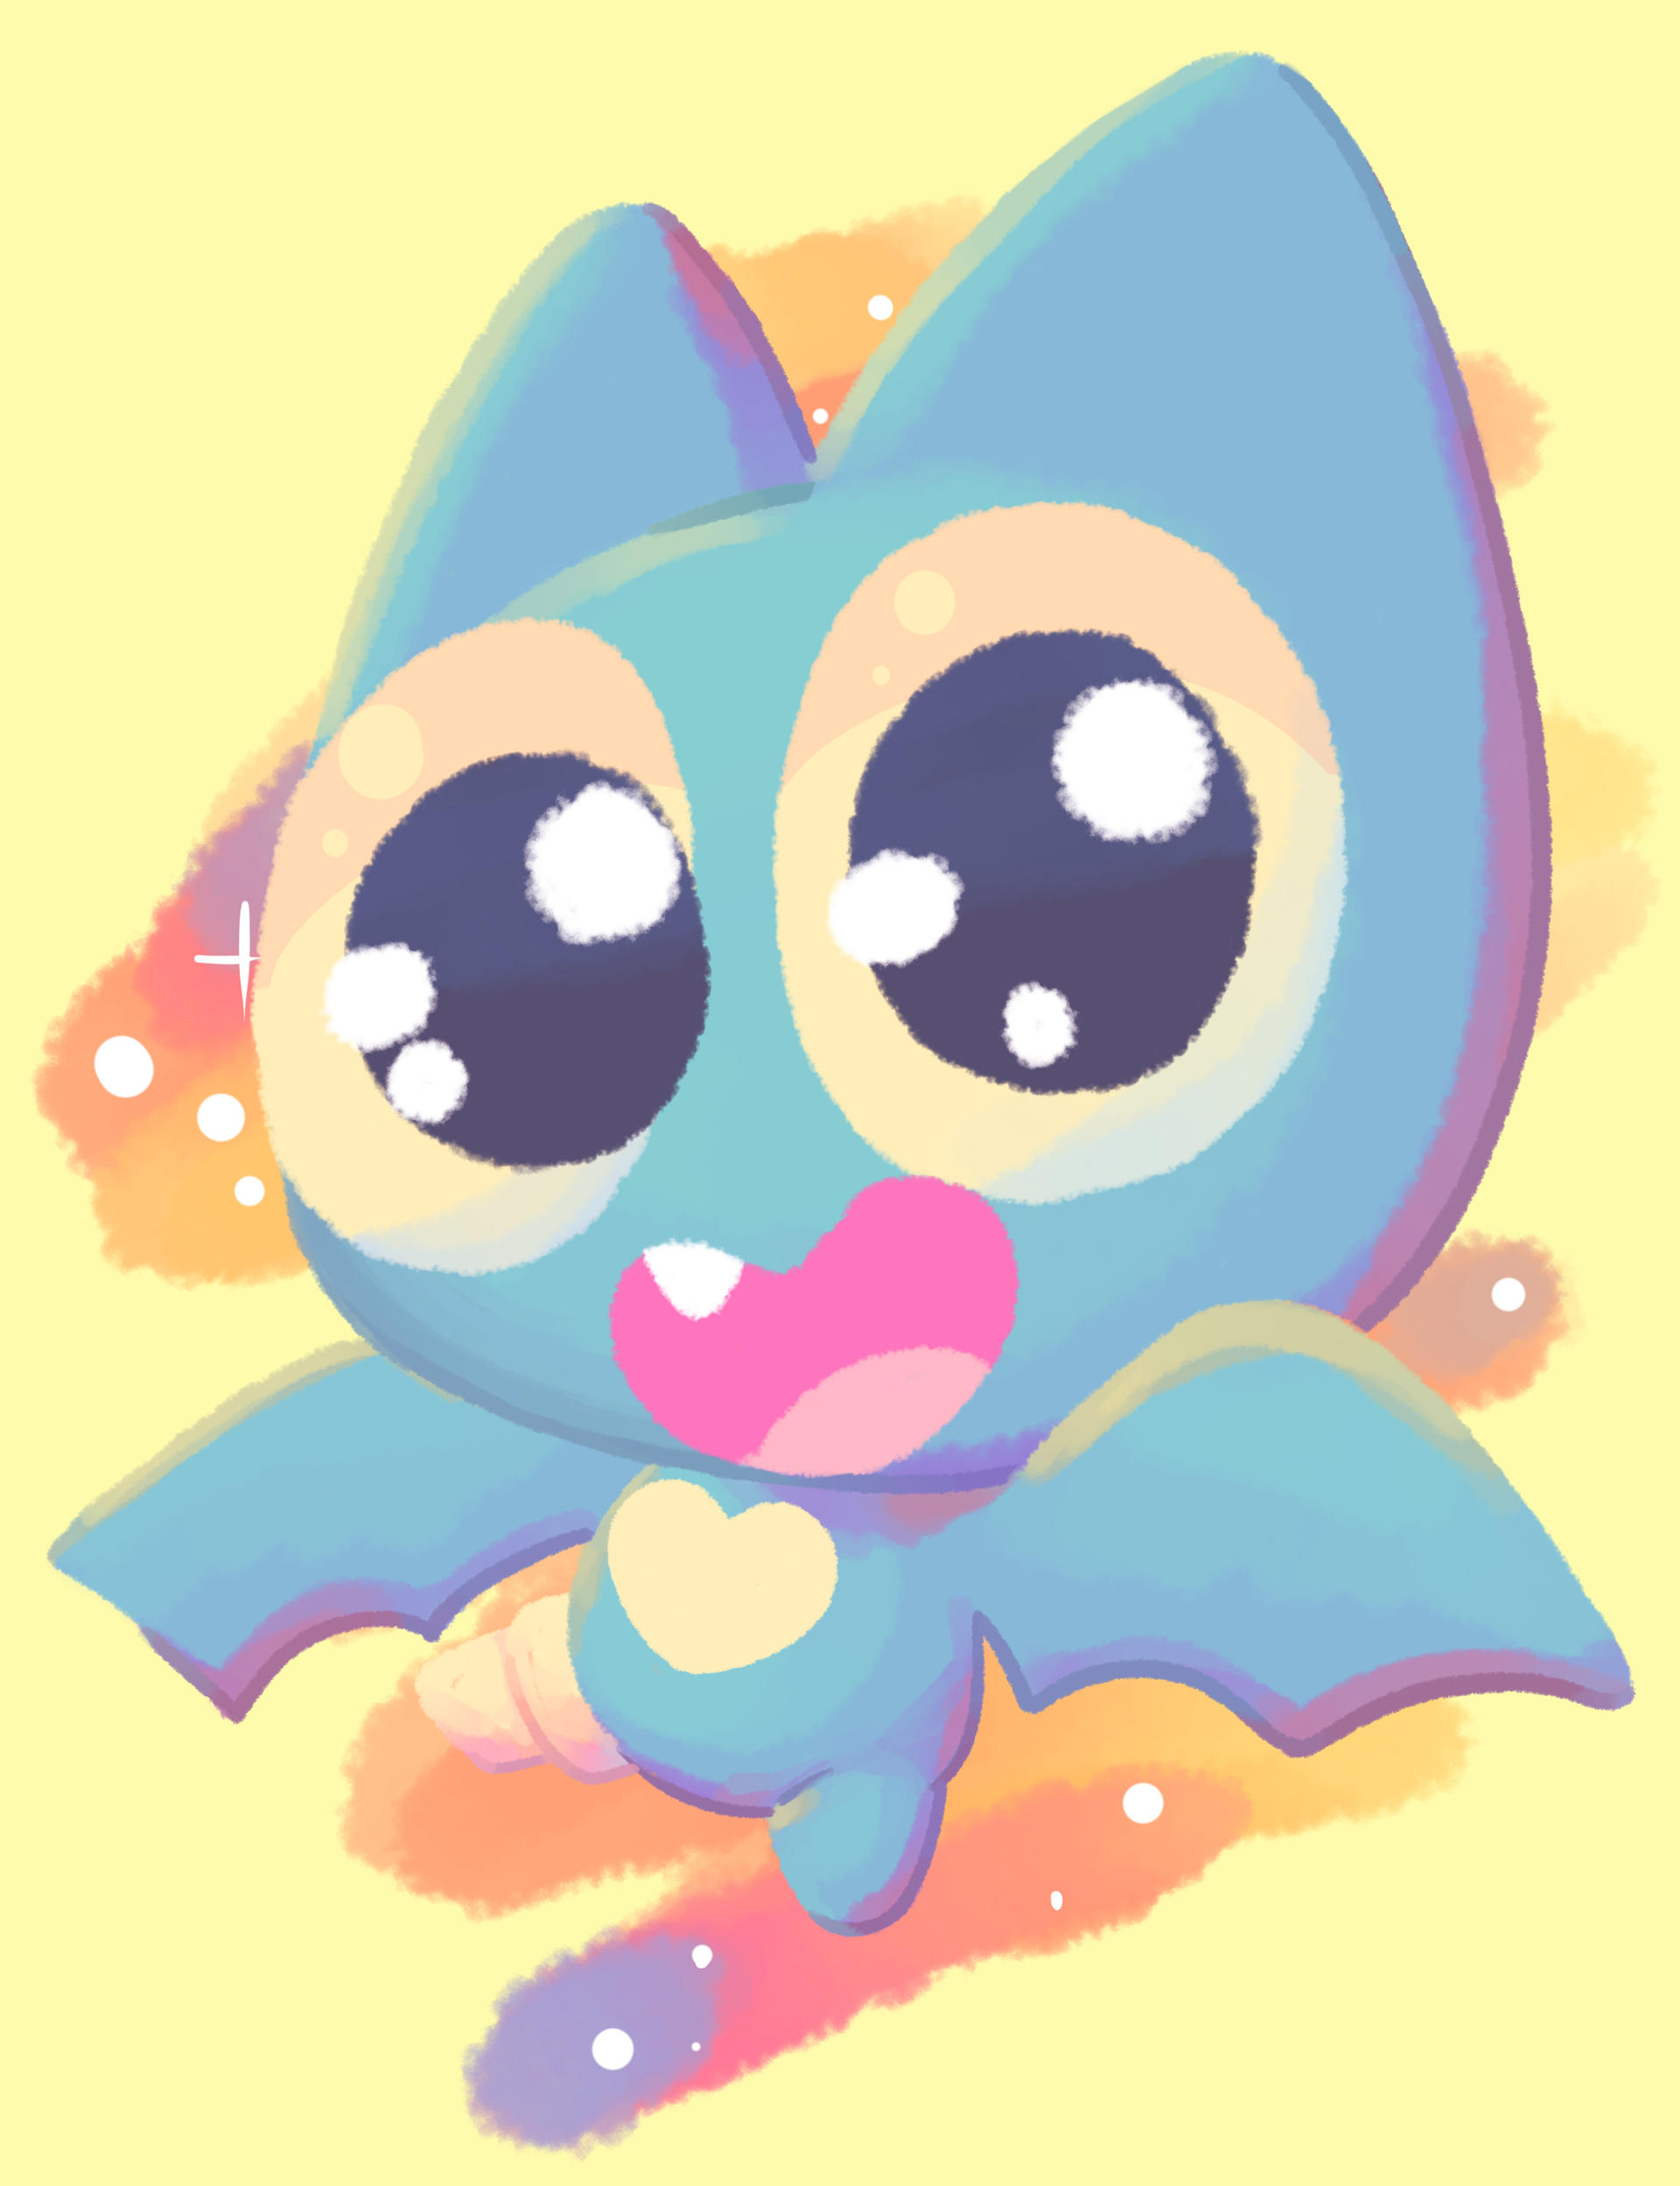 Adorabat Pastel Color 1 By Charunikkoo On Deviantart See more ideas about kawaii, cute illustration, cute art. adorabat pastel color 1 by